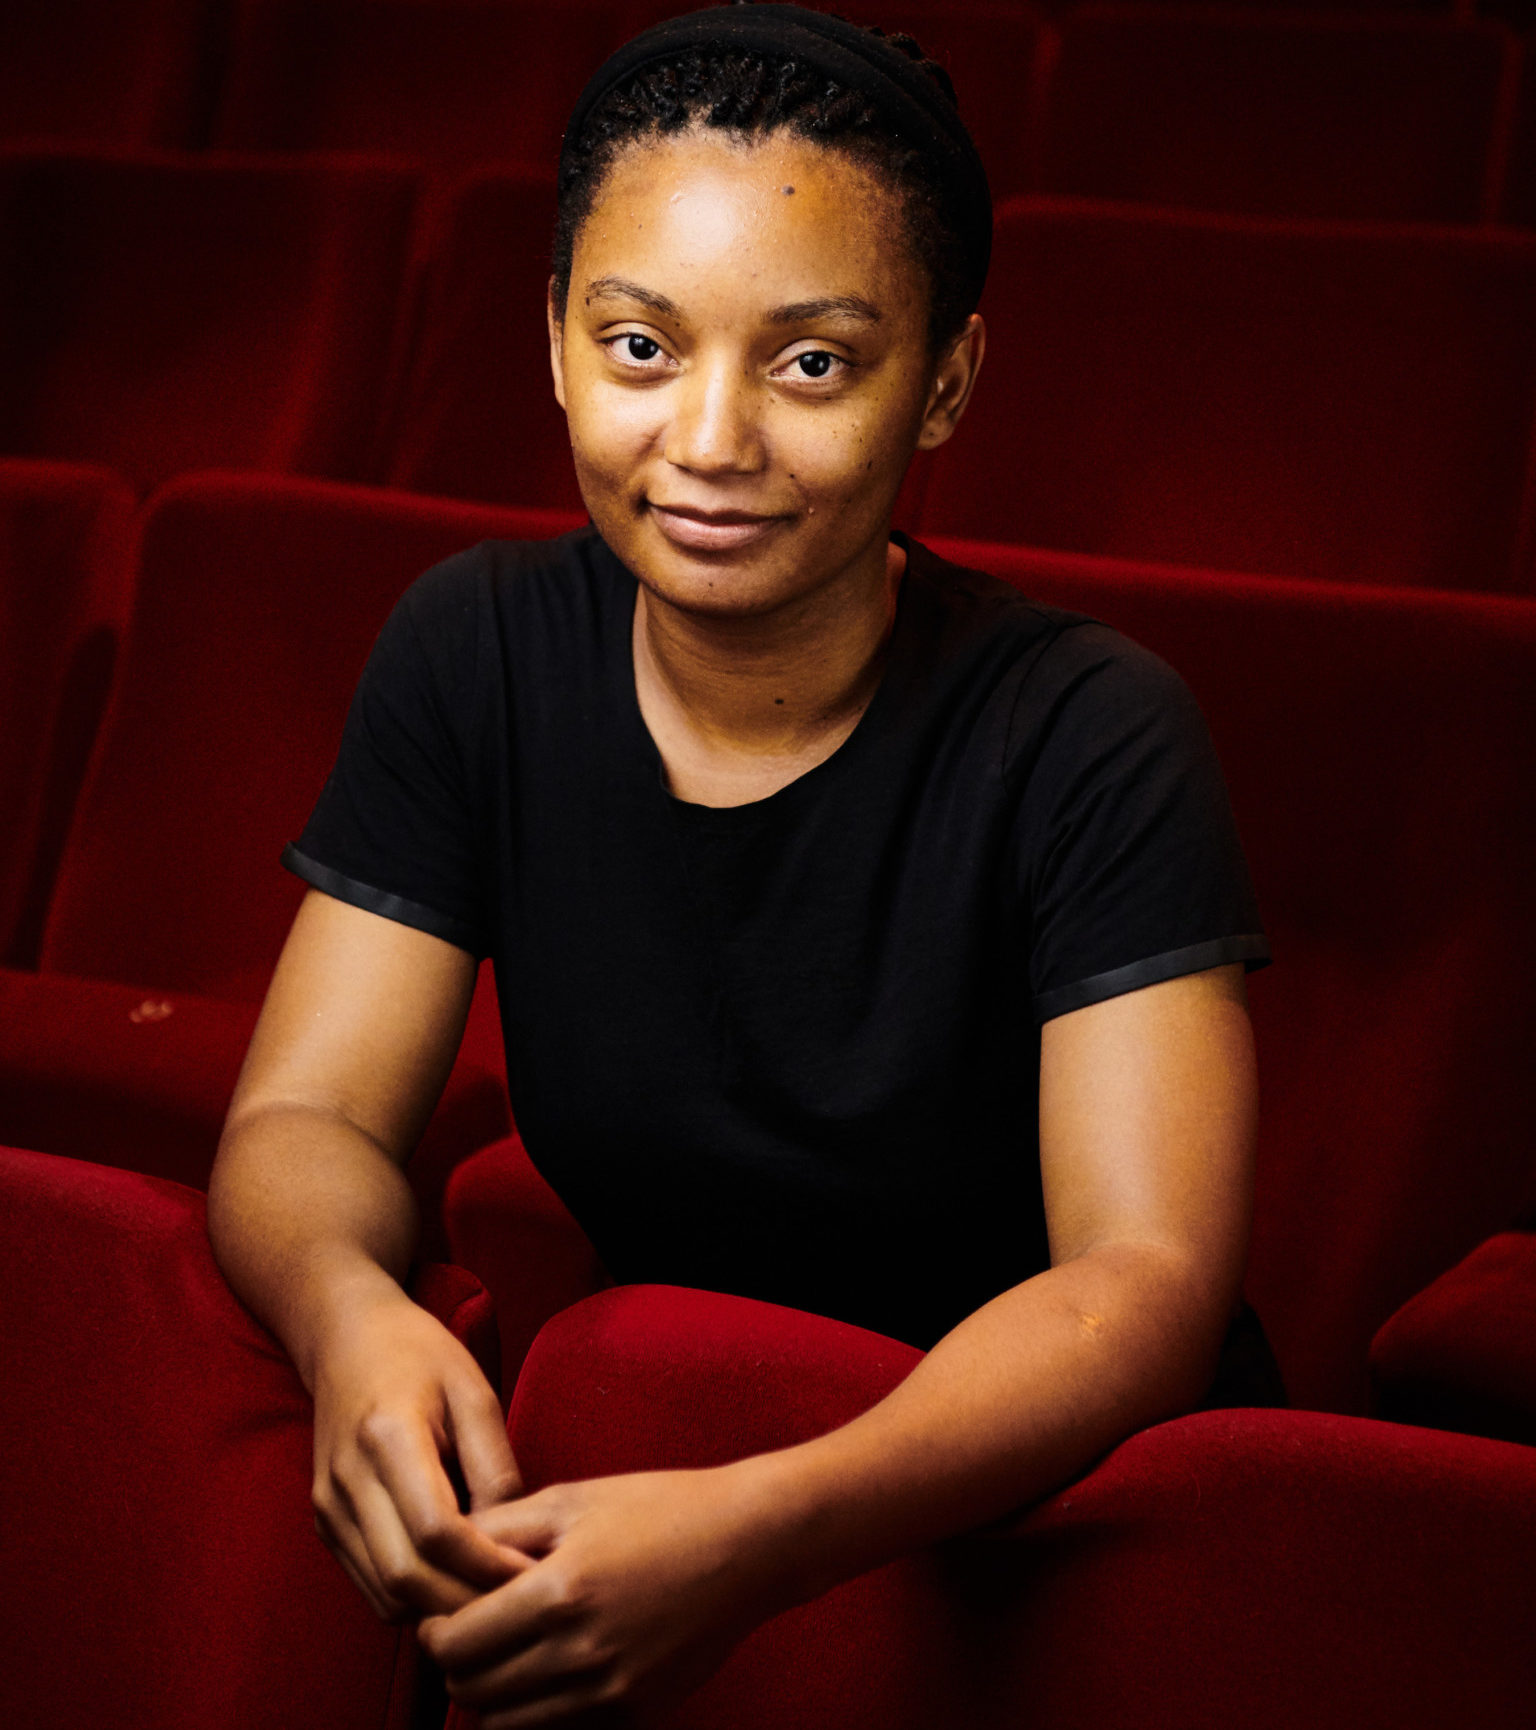 "Rungano Nyoni is a self-taught writer/director born in Lusaka, Zambia and grew up in Wales, UK. Her short films have featured in over 400 film festivals. In 2009 she won a BAFTA Cymru for her short film ""The List"". Her subsequent film ""Mwansa The Great"" was funded by UK Film Council and Focus Features (USA). It was selected at over 100 Inter- national Film Festivals, awarded over 20 prizes and nomi- nated for a BAFTA in 2012. In 2015 Rungano was selected for the Nordic Factory, a Finnish/Danish Co Production where she co-directed ""Listen"". ""Listen"" was nominated for a European Film Award 2015 and won the Best Short Narrative Prize at Tribeca Film Festival. Rungano's debut feature, ""I Am Not a Witch"", premiered this year at Cannes Film Festival in the Directors Fortnight Sidebar, and also screened at TIFF ahead of its LFF premiere."